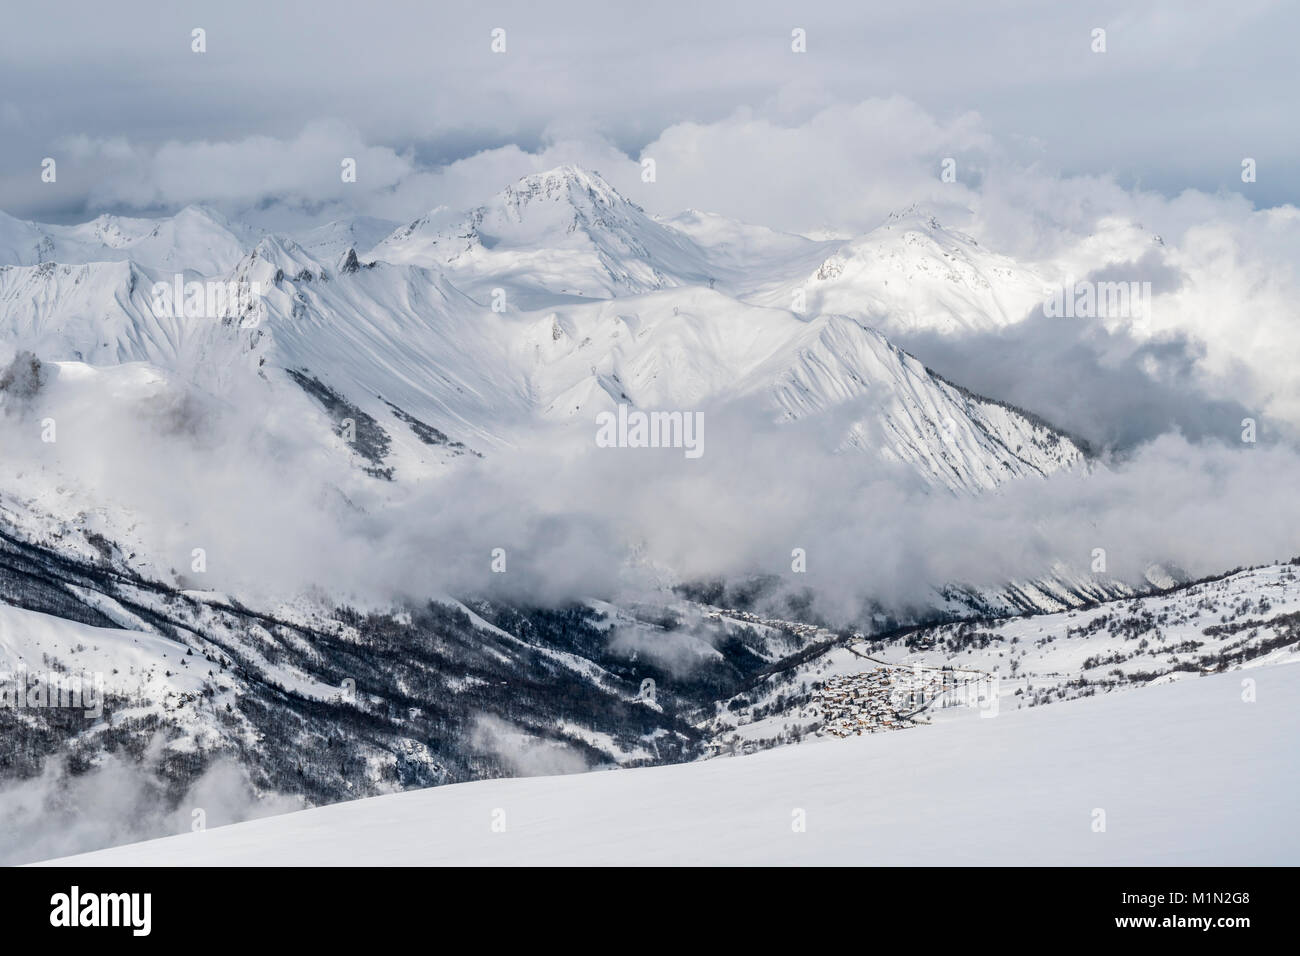 distant view across a snowy belleville valley to the ski resort of